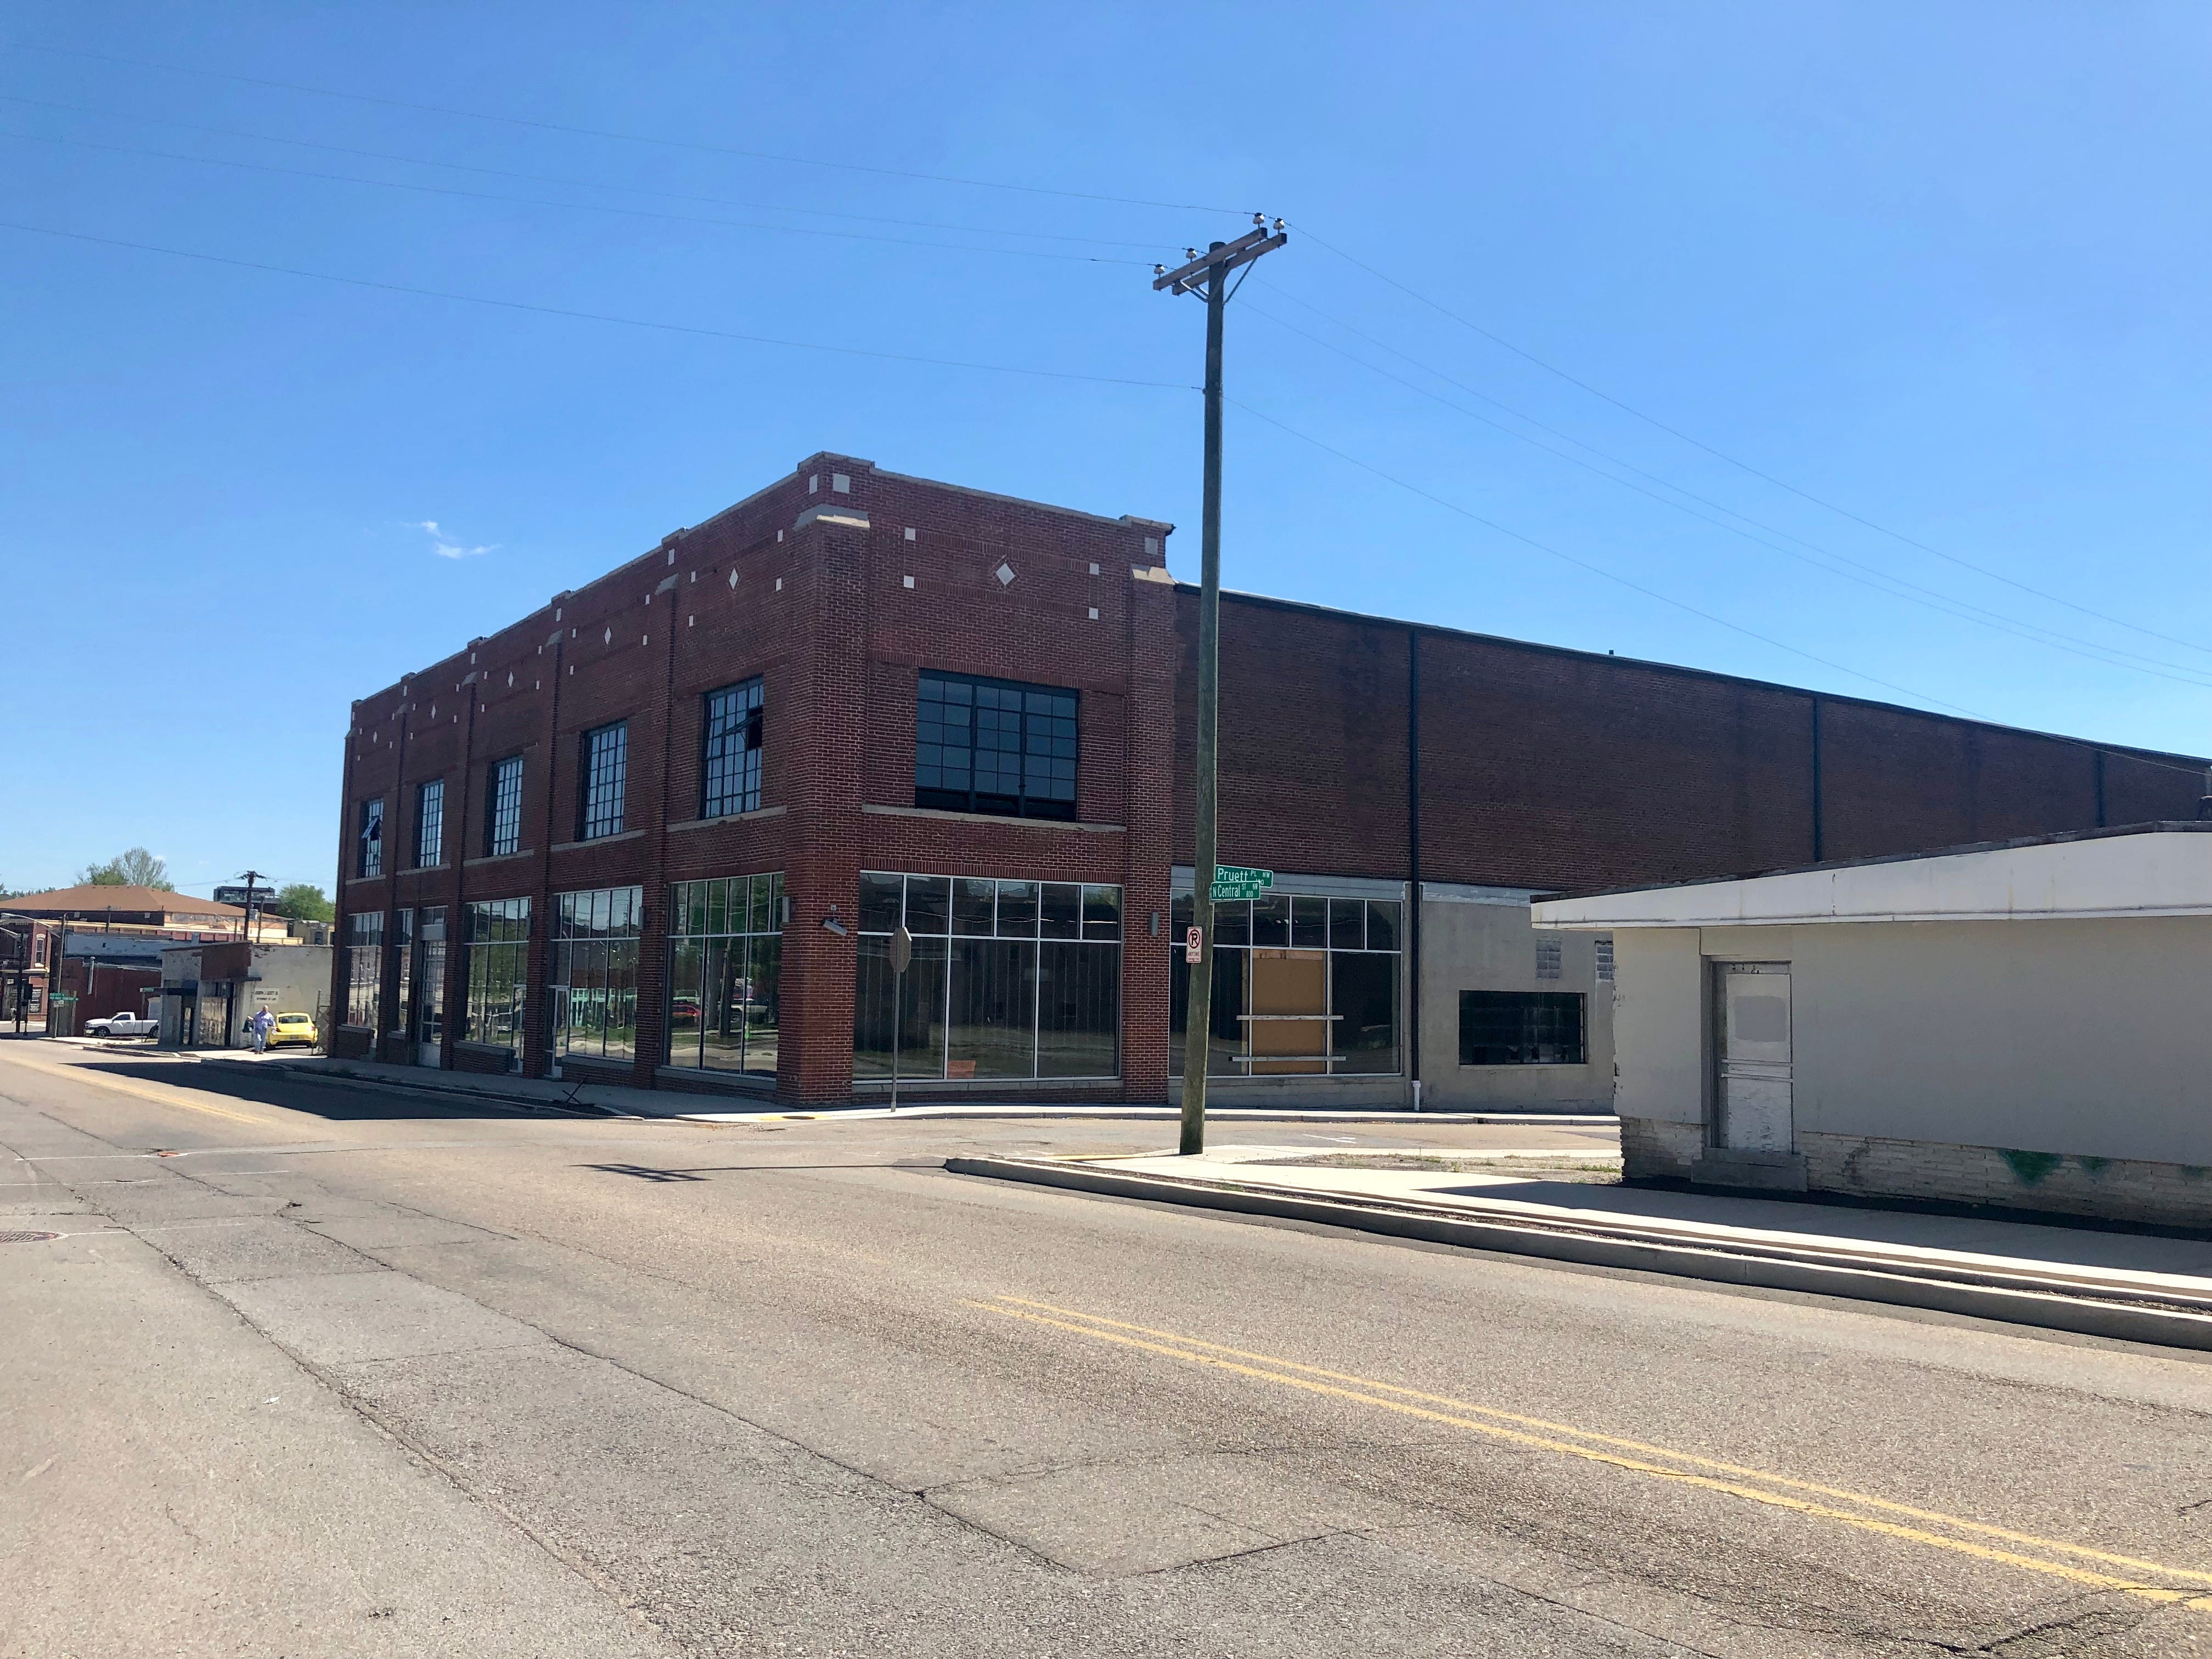 The Hull-Dobbs Building, located at 835 N. Central Street. Owners of this one-time Ford dealership propose to restore the building to its original splendor in preparation to house the headquarters of local third-party logistics company Axle Logistics. There's also the potential for retail on the ground floor. Through the Historic Preservation Fund, they were awarded a $200,000 grant for the project.